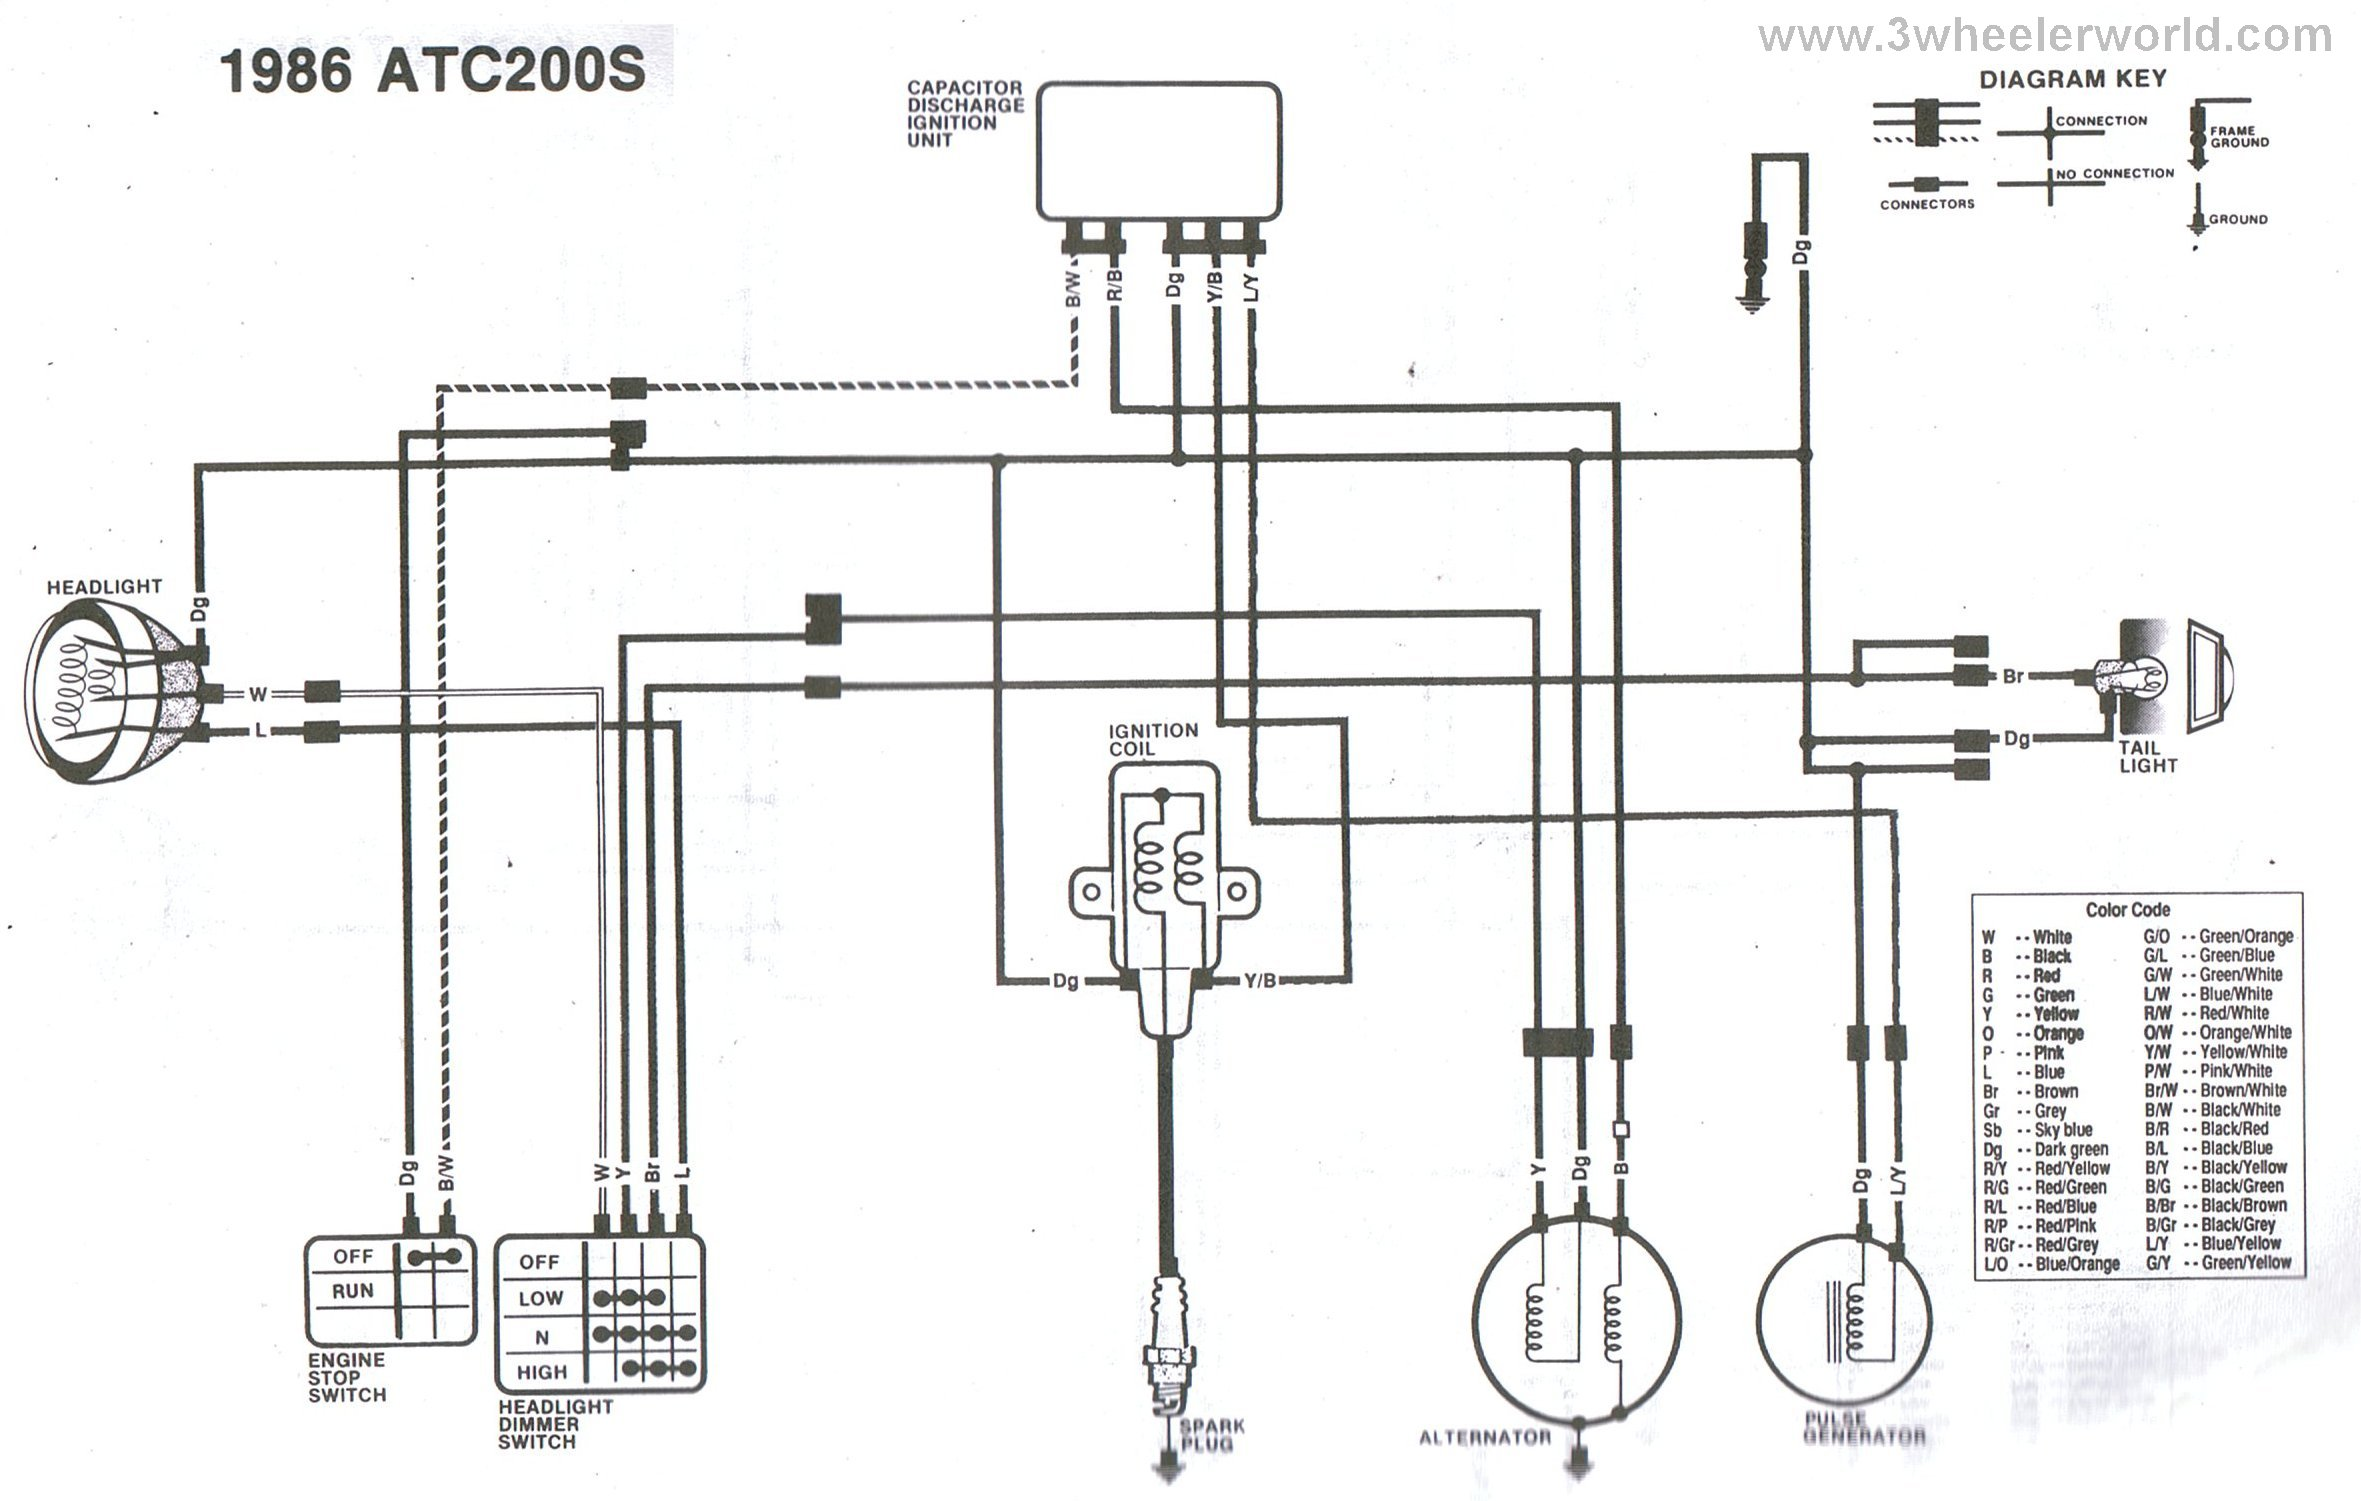 ATC200Sx86 3 wheeler world tech help honda wiring diagrams  at virtualis.co